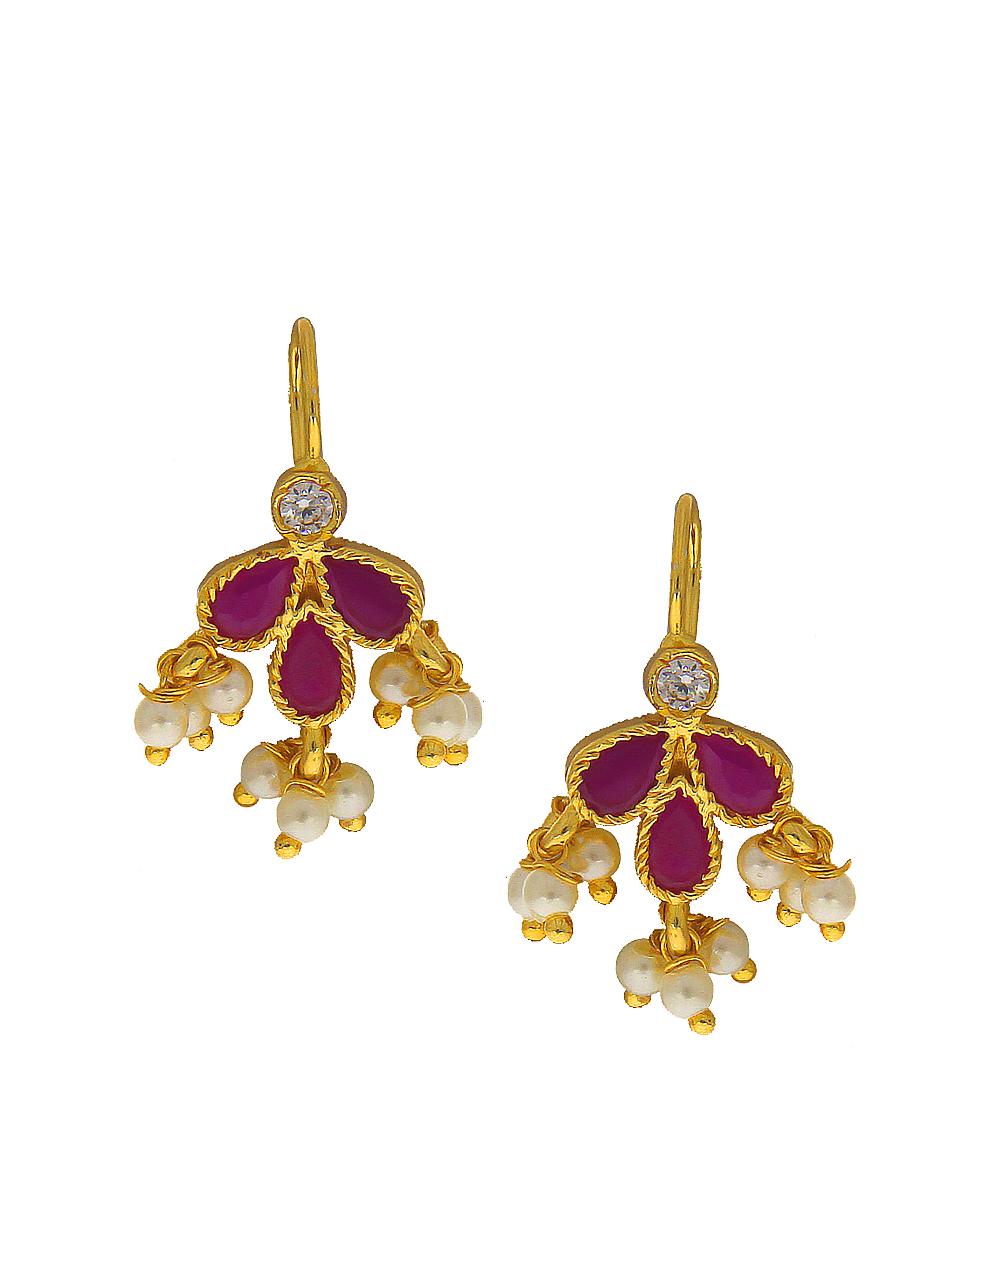 Pink Colour Adorable Bugdi Earring Styled With Pearls Beads Earring Jewellery